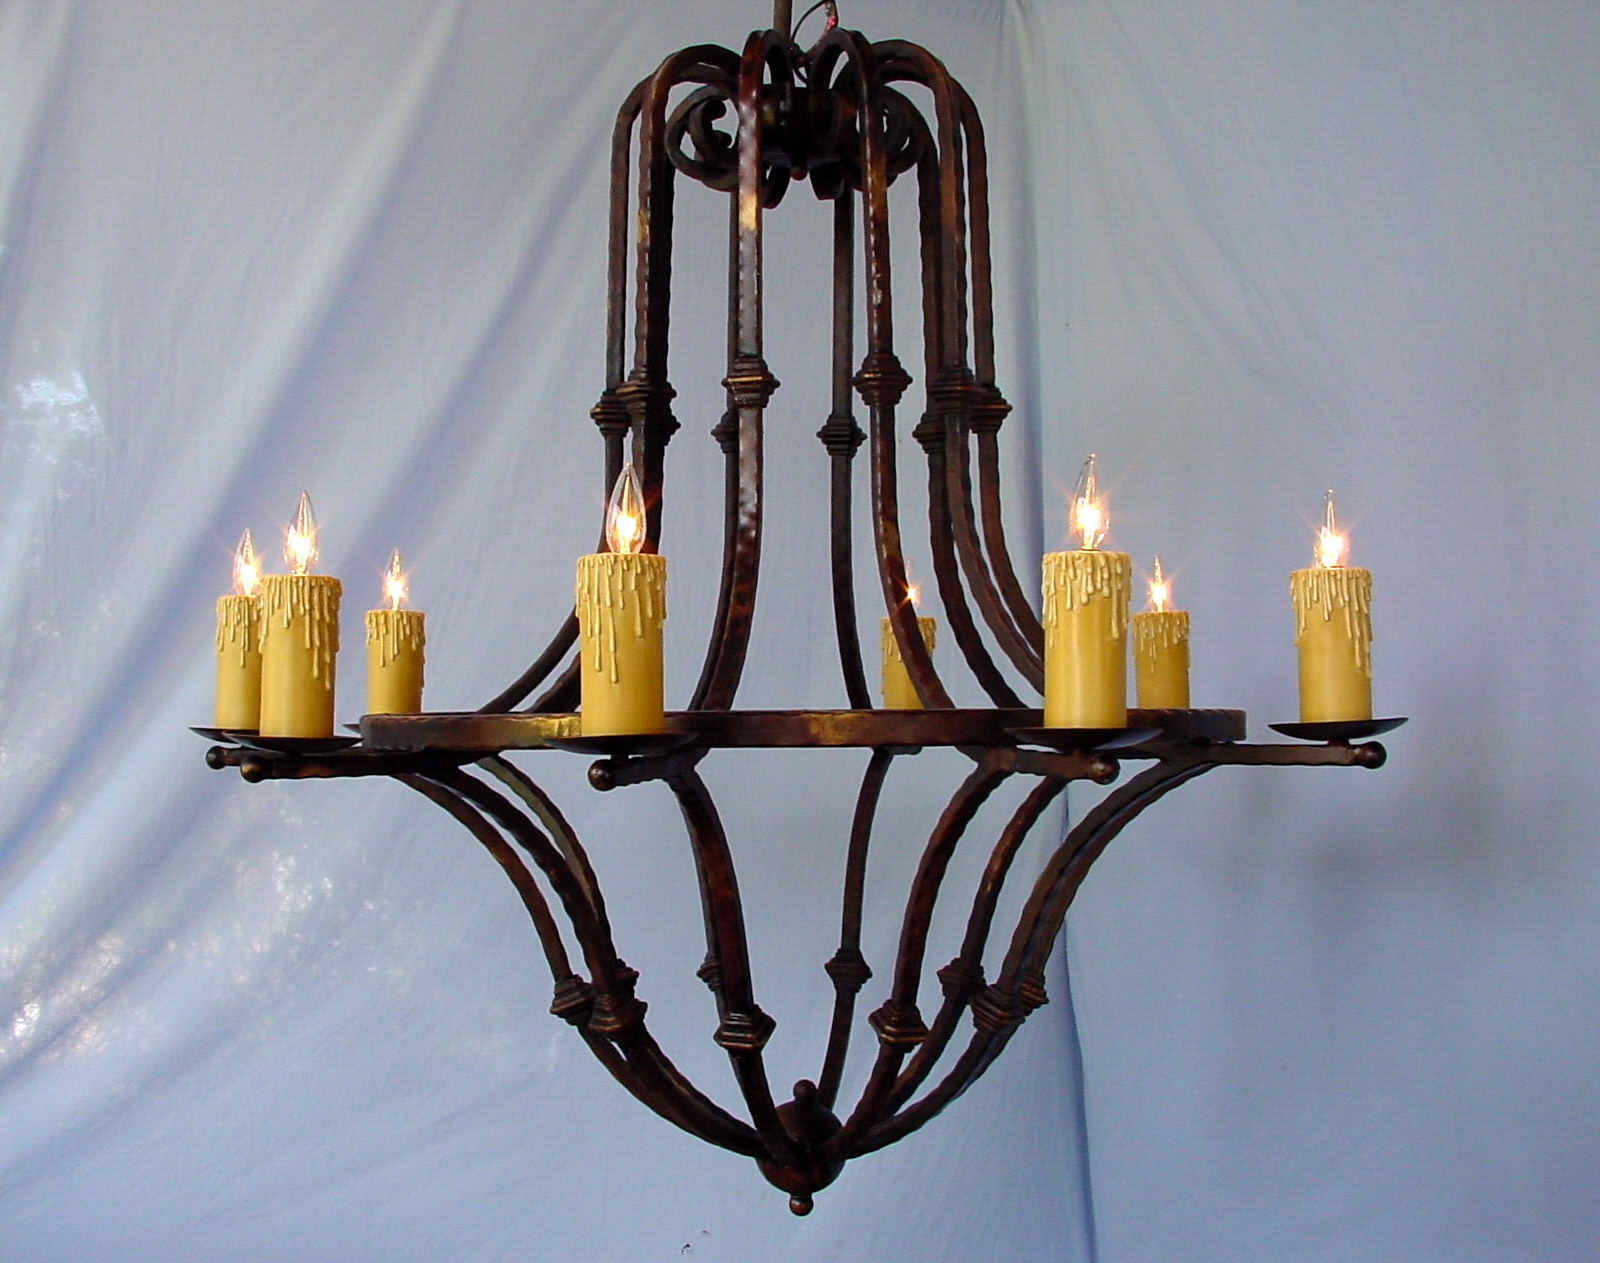 Chandelier Modern Wrought Iron Chandeliers 15 of 15 s